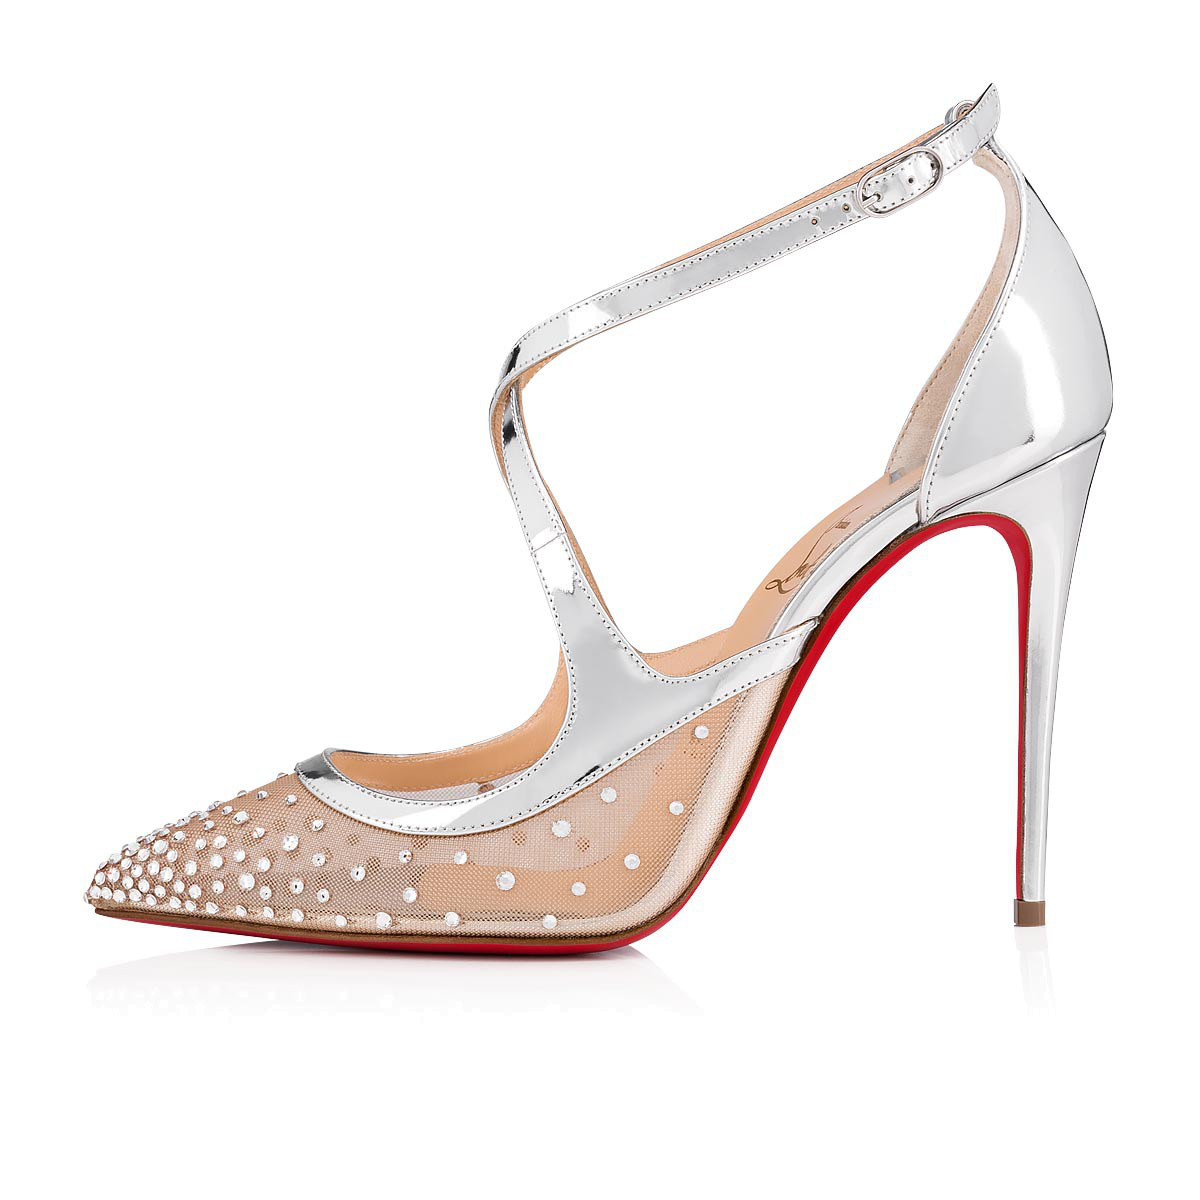 adc43dc346cb Christian Louboutin Twistissima Strass 100 Metallic Leather Pumps In  Version Crystal